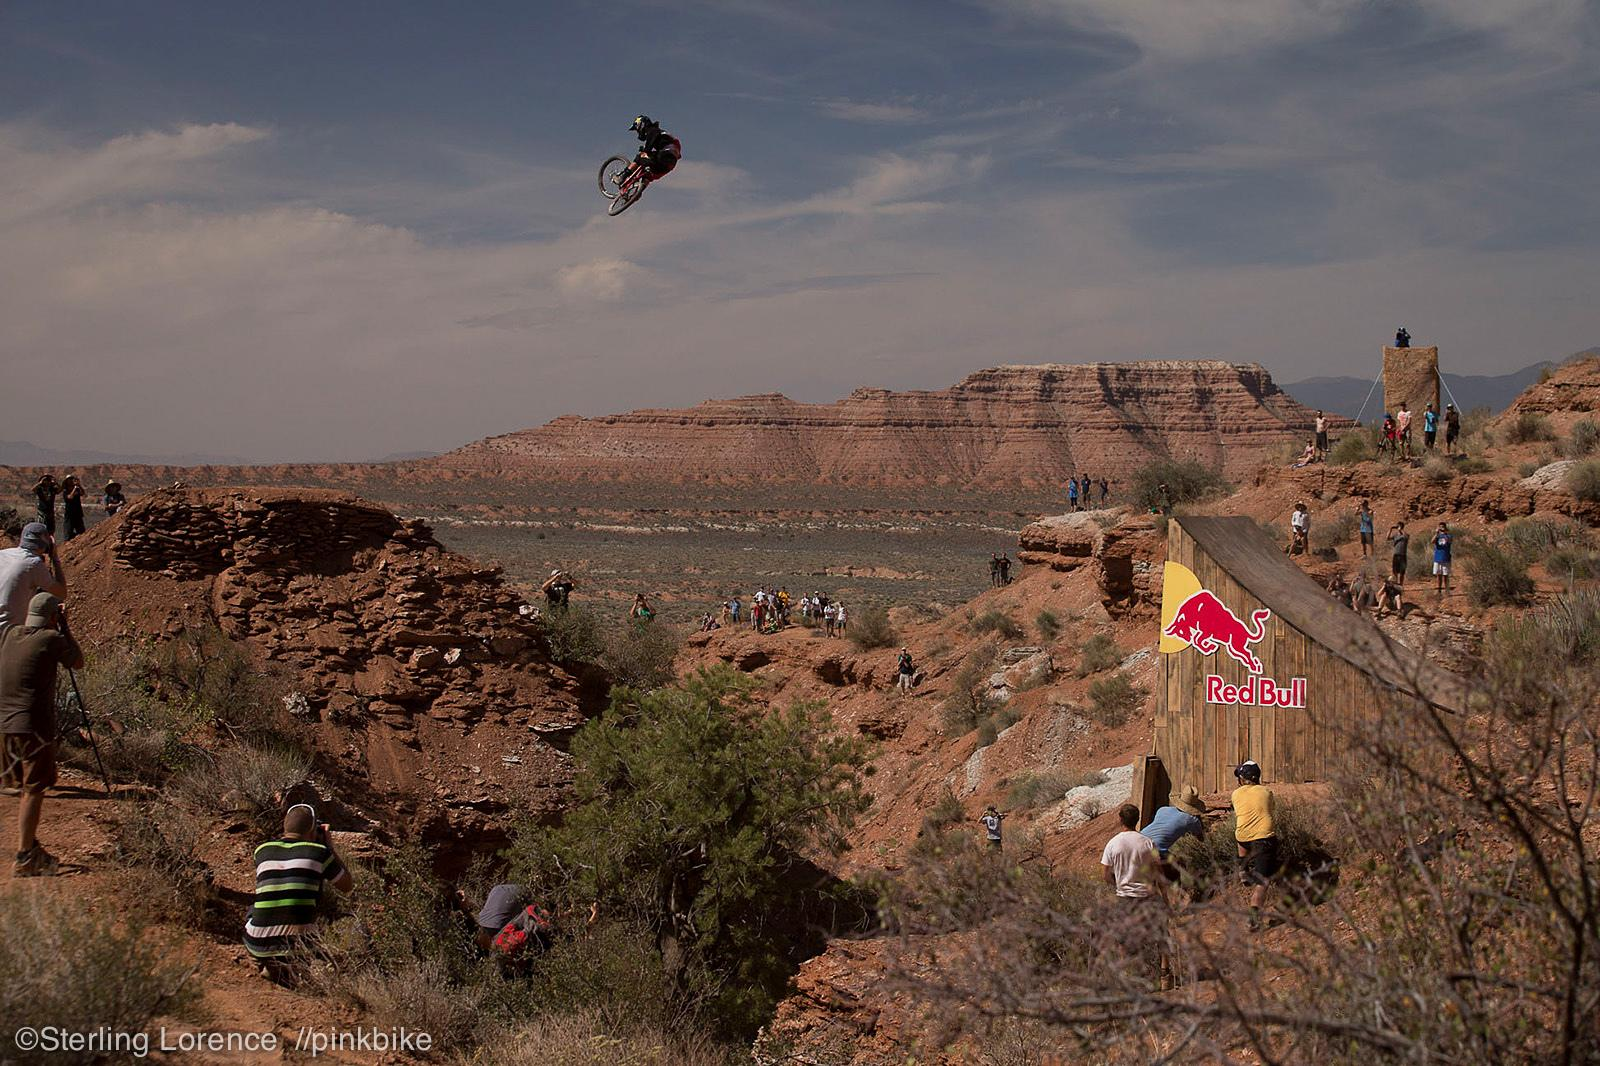 at 2012 Redbull Rampage in Virgin, Utah, United States - photo by sterlinglorence - Pinkbike